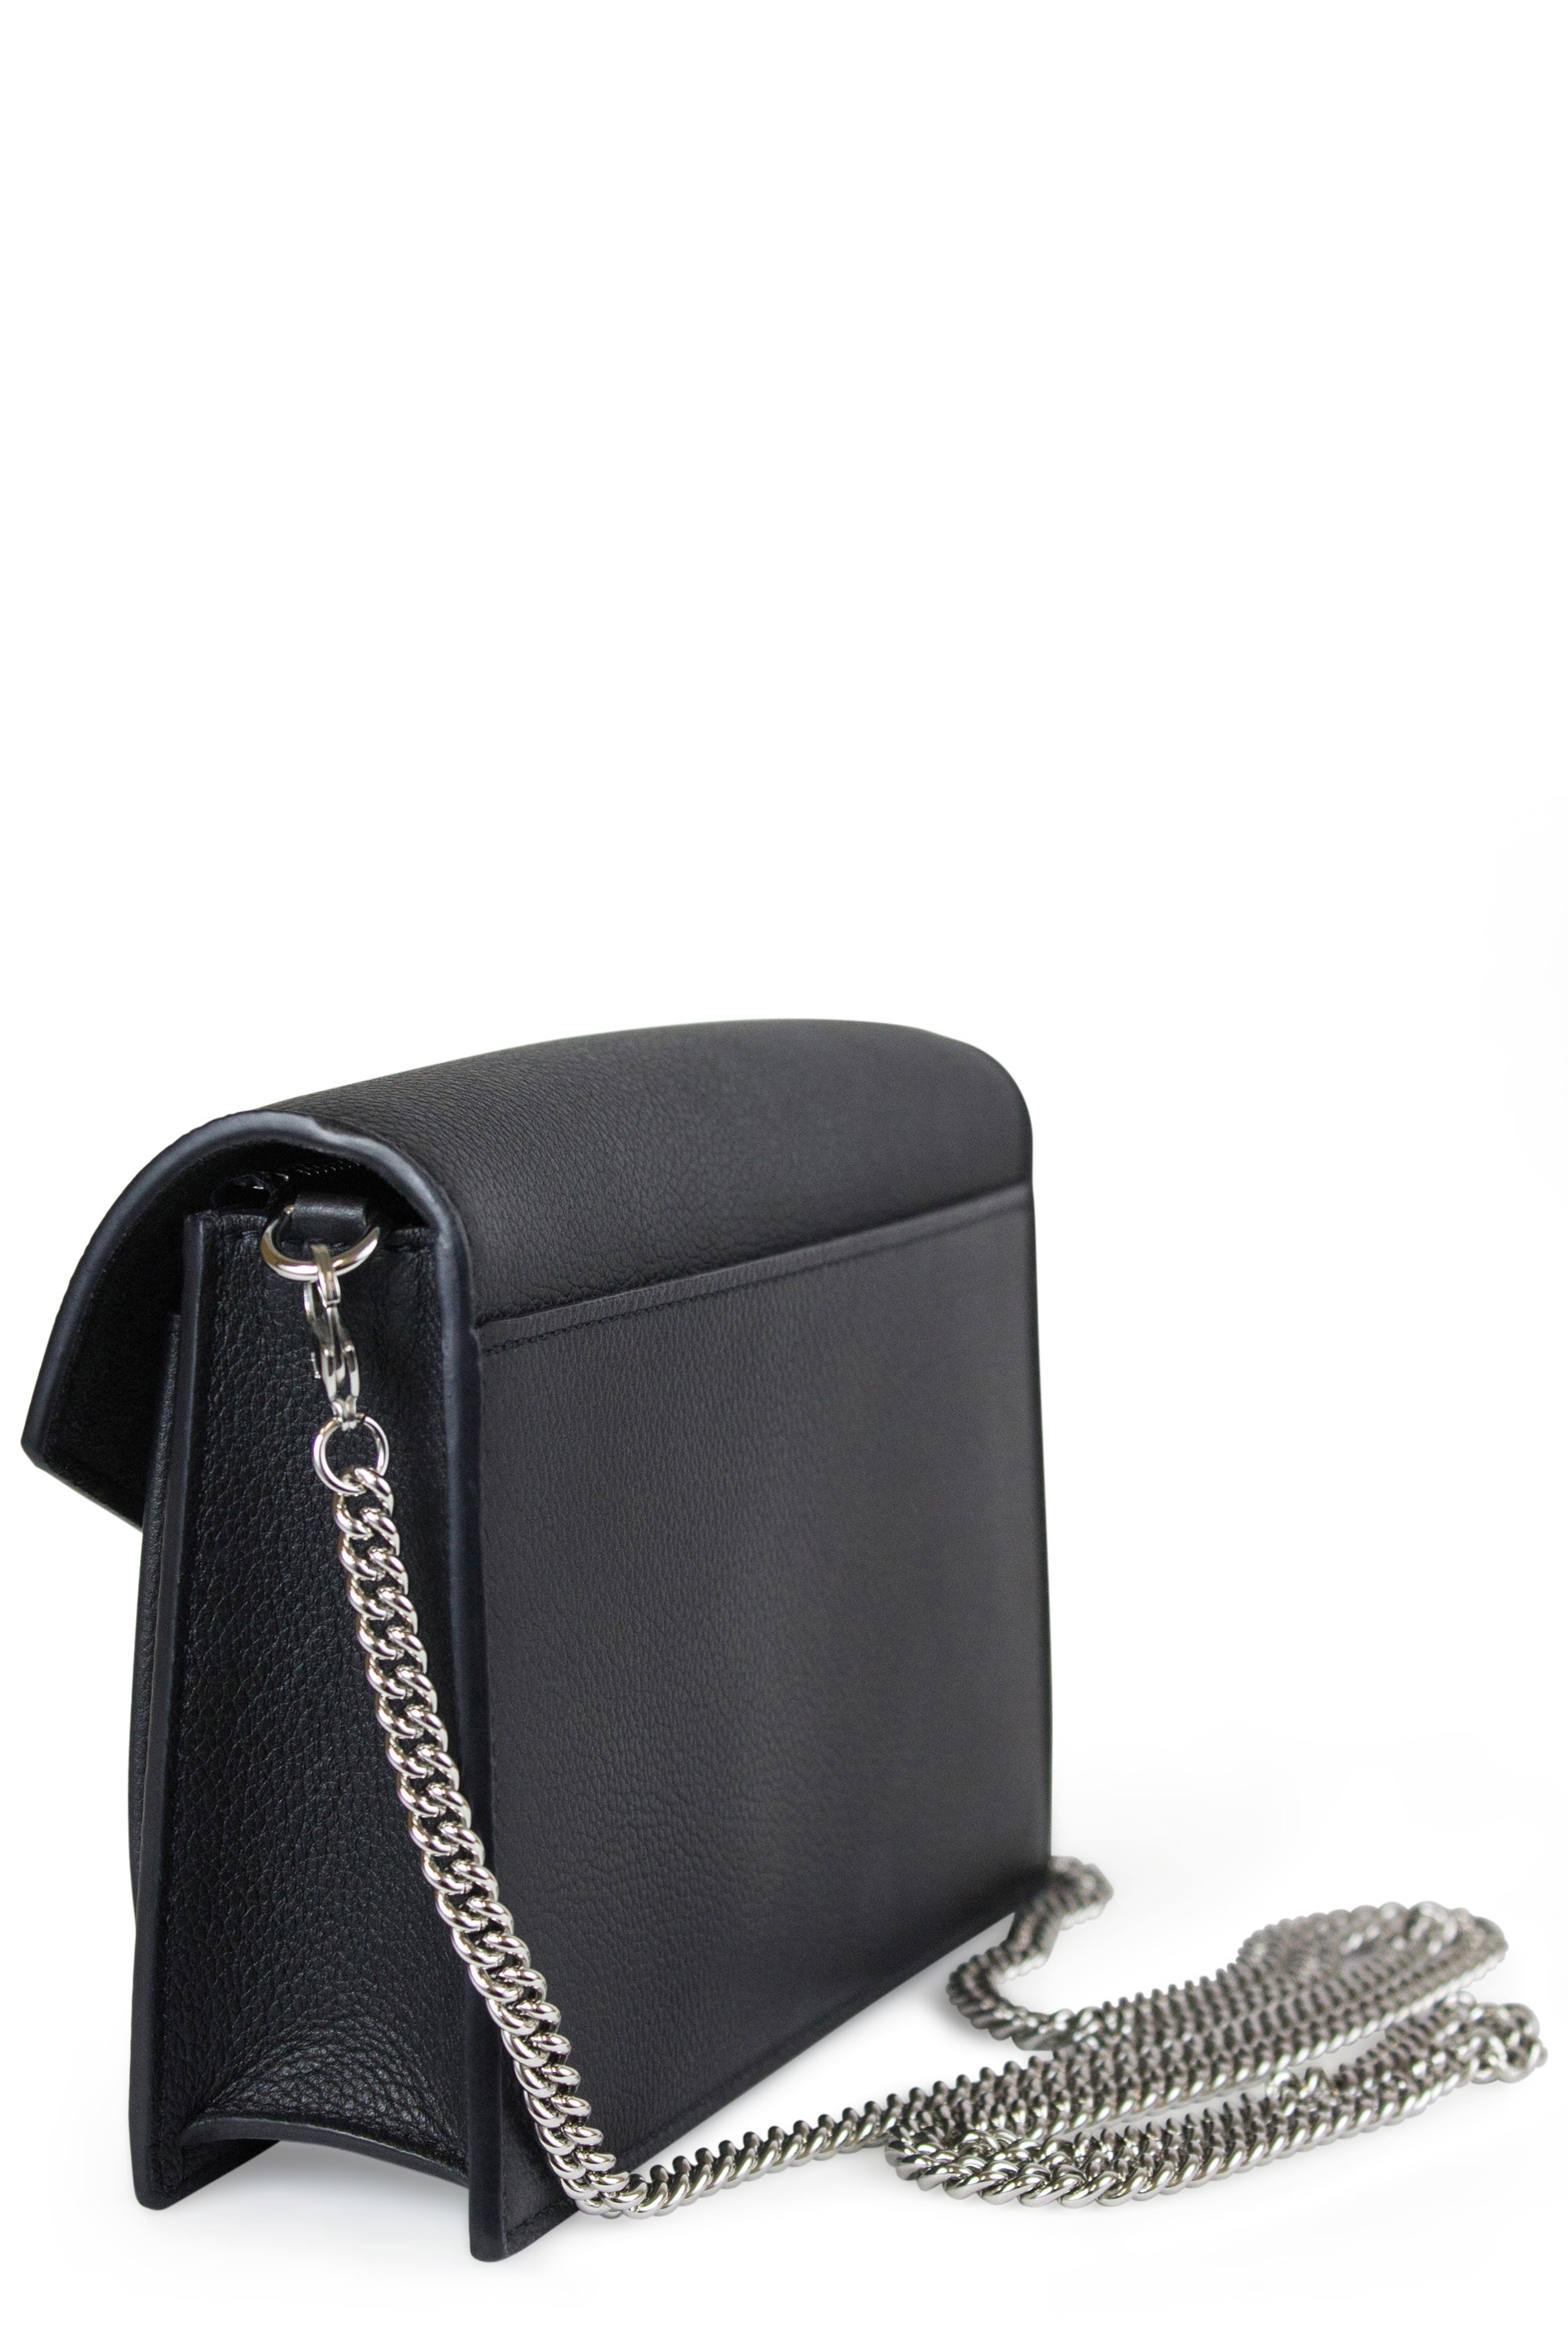 LOUIS VUITTON Mylookme Chain Pochette